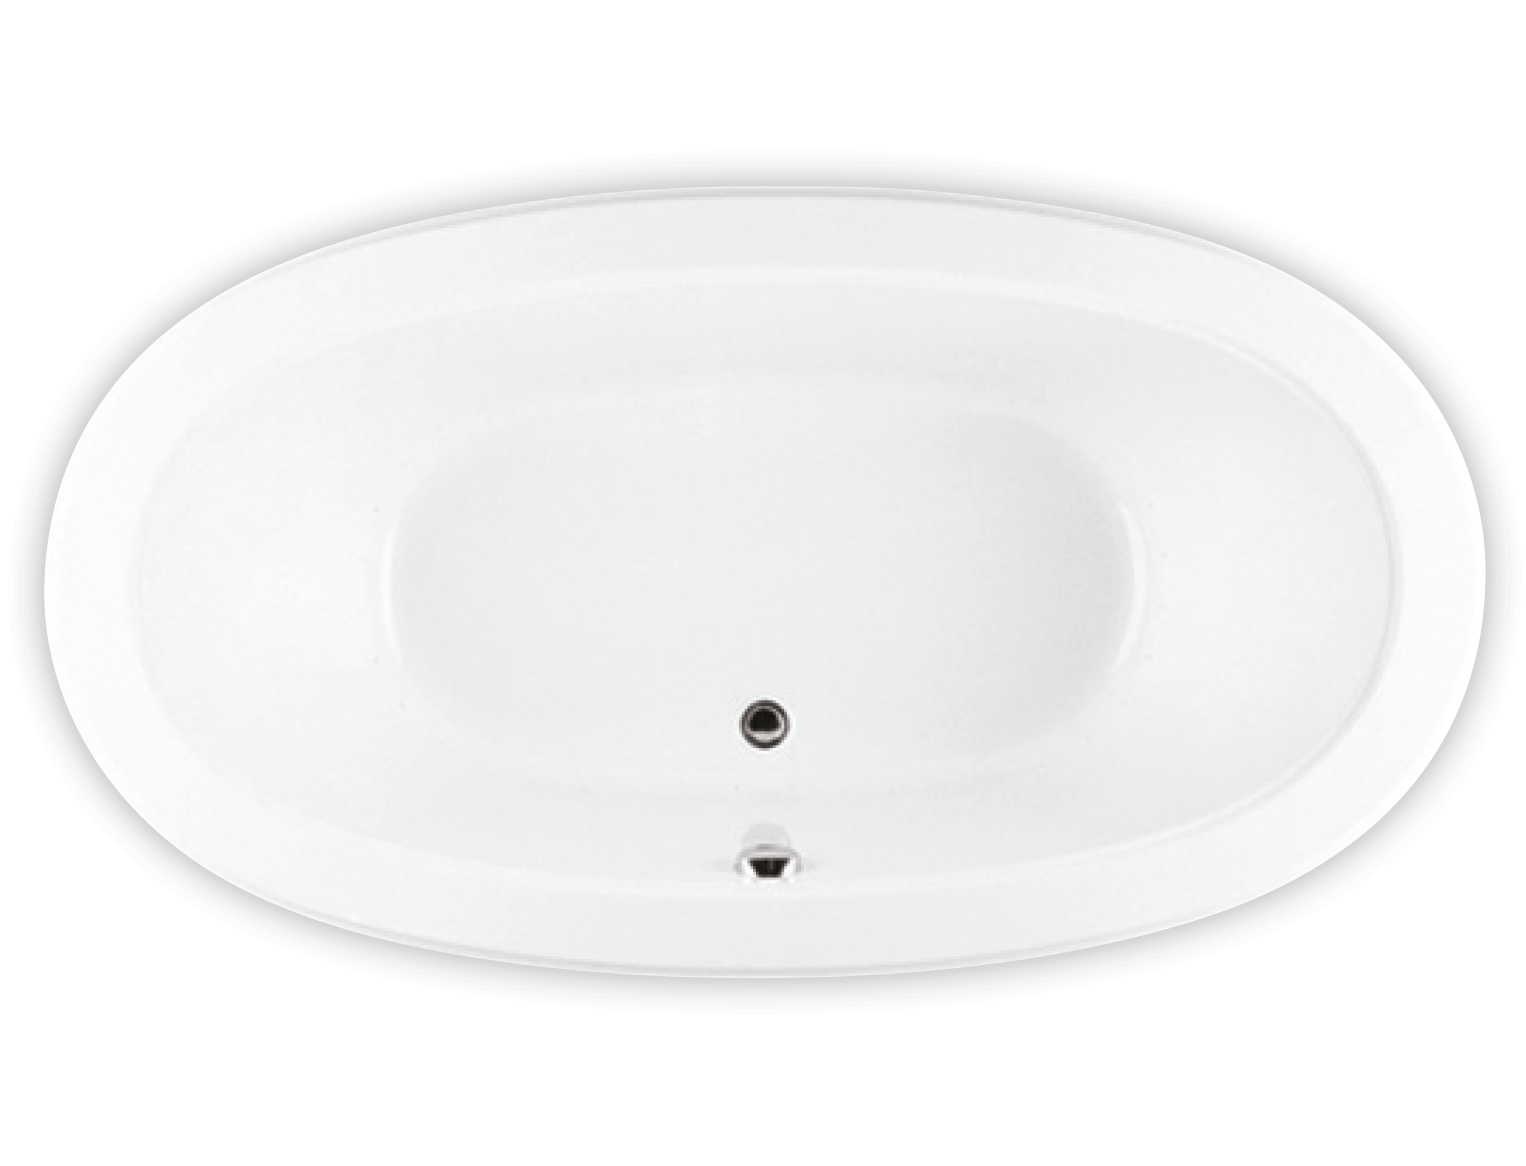 Bainultra Cella 6636 clawfoot air jet bathtub for your modern bathroom